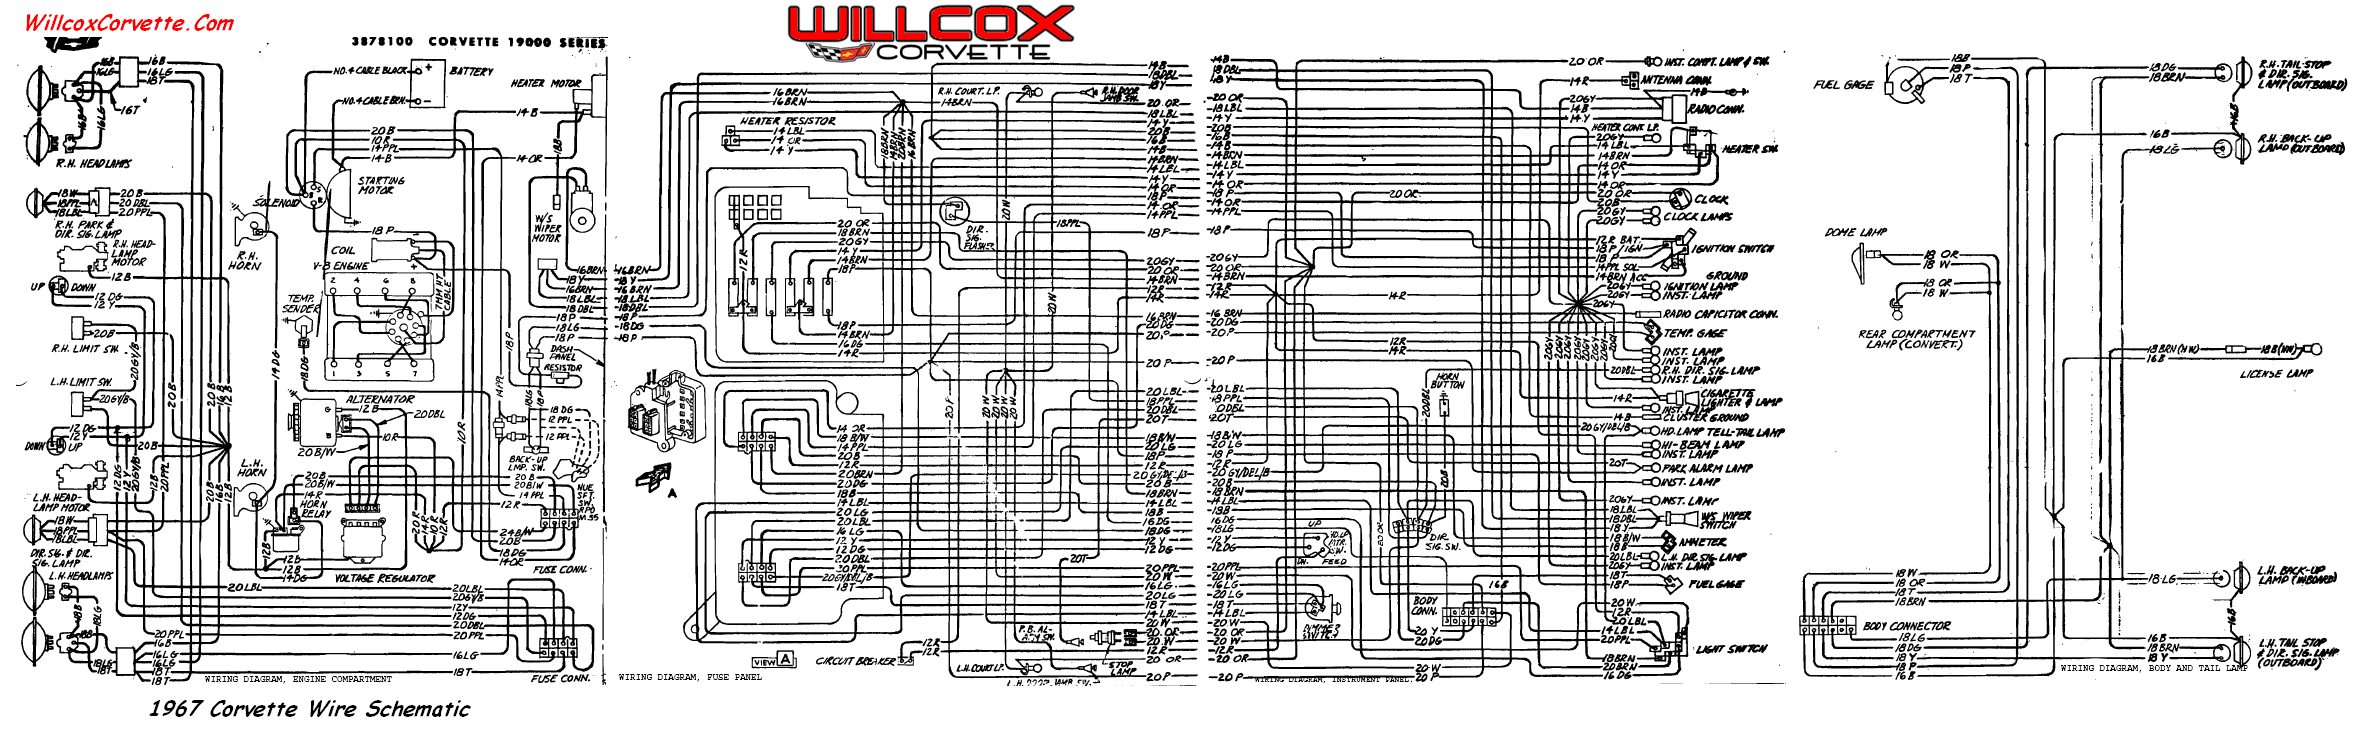 2000 Corvette Wiring Diagram Wiring Diagrams Schematics Corvette Wiring Schematic Wiring Diagrams Schematics 2000 Corvette Wiring Diagrams 2000 Corvette ...